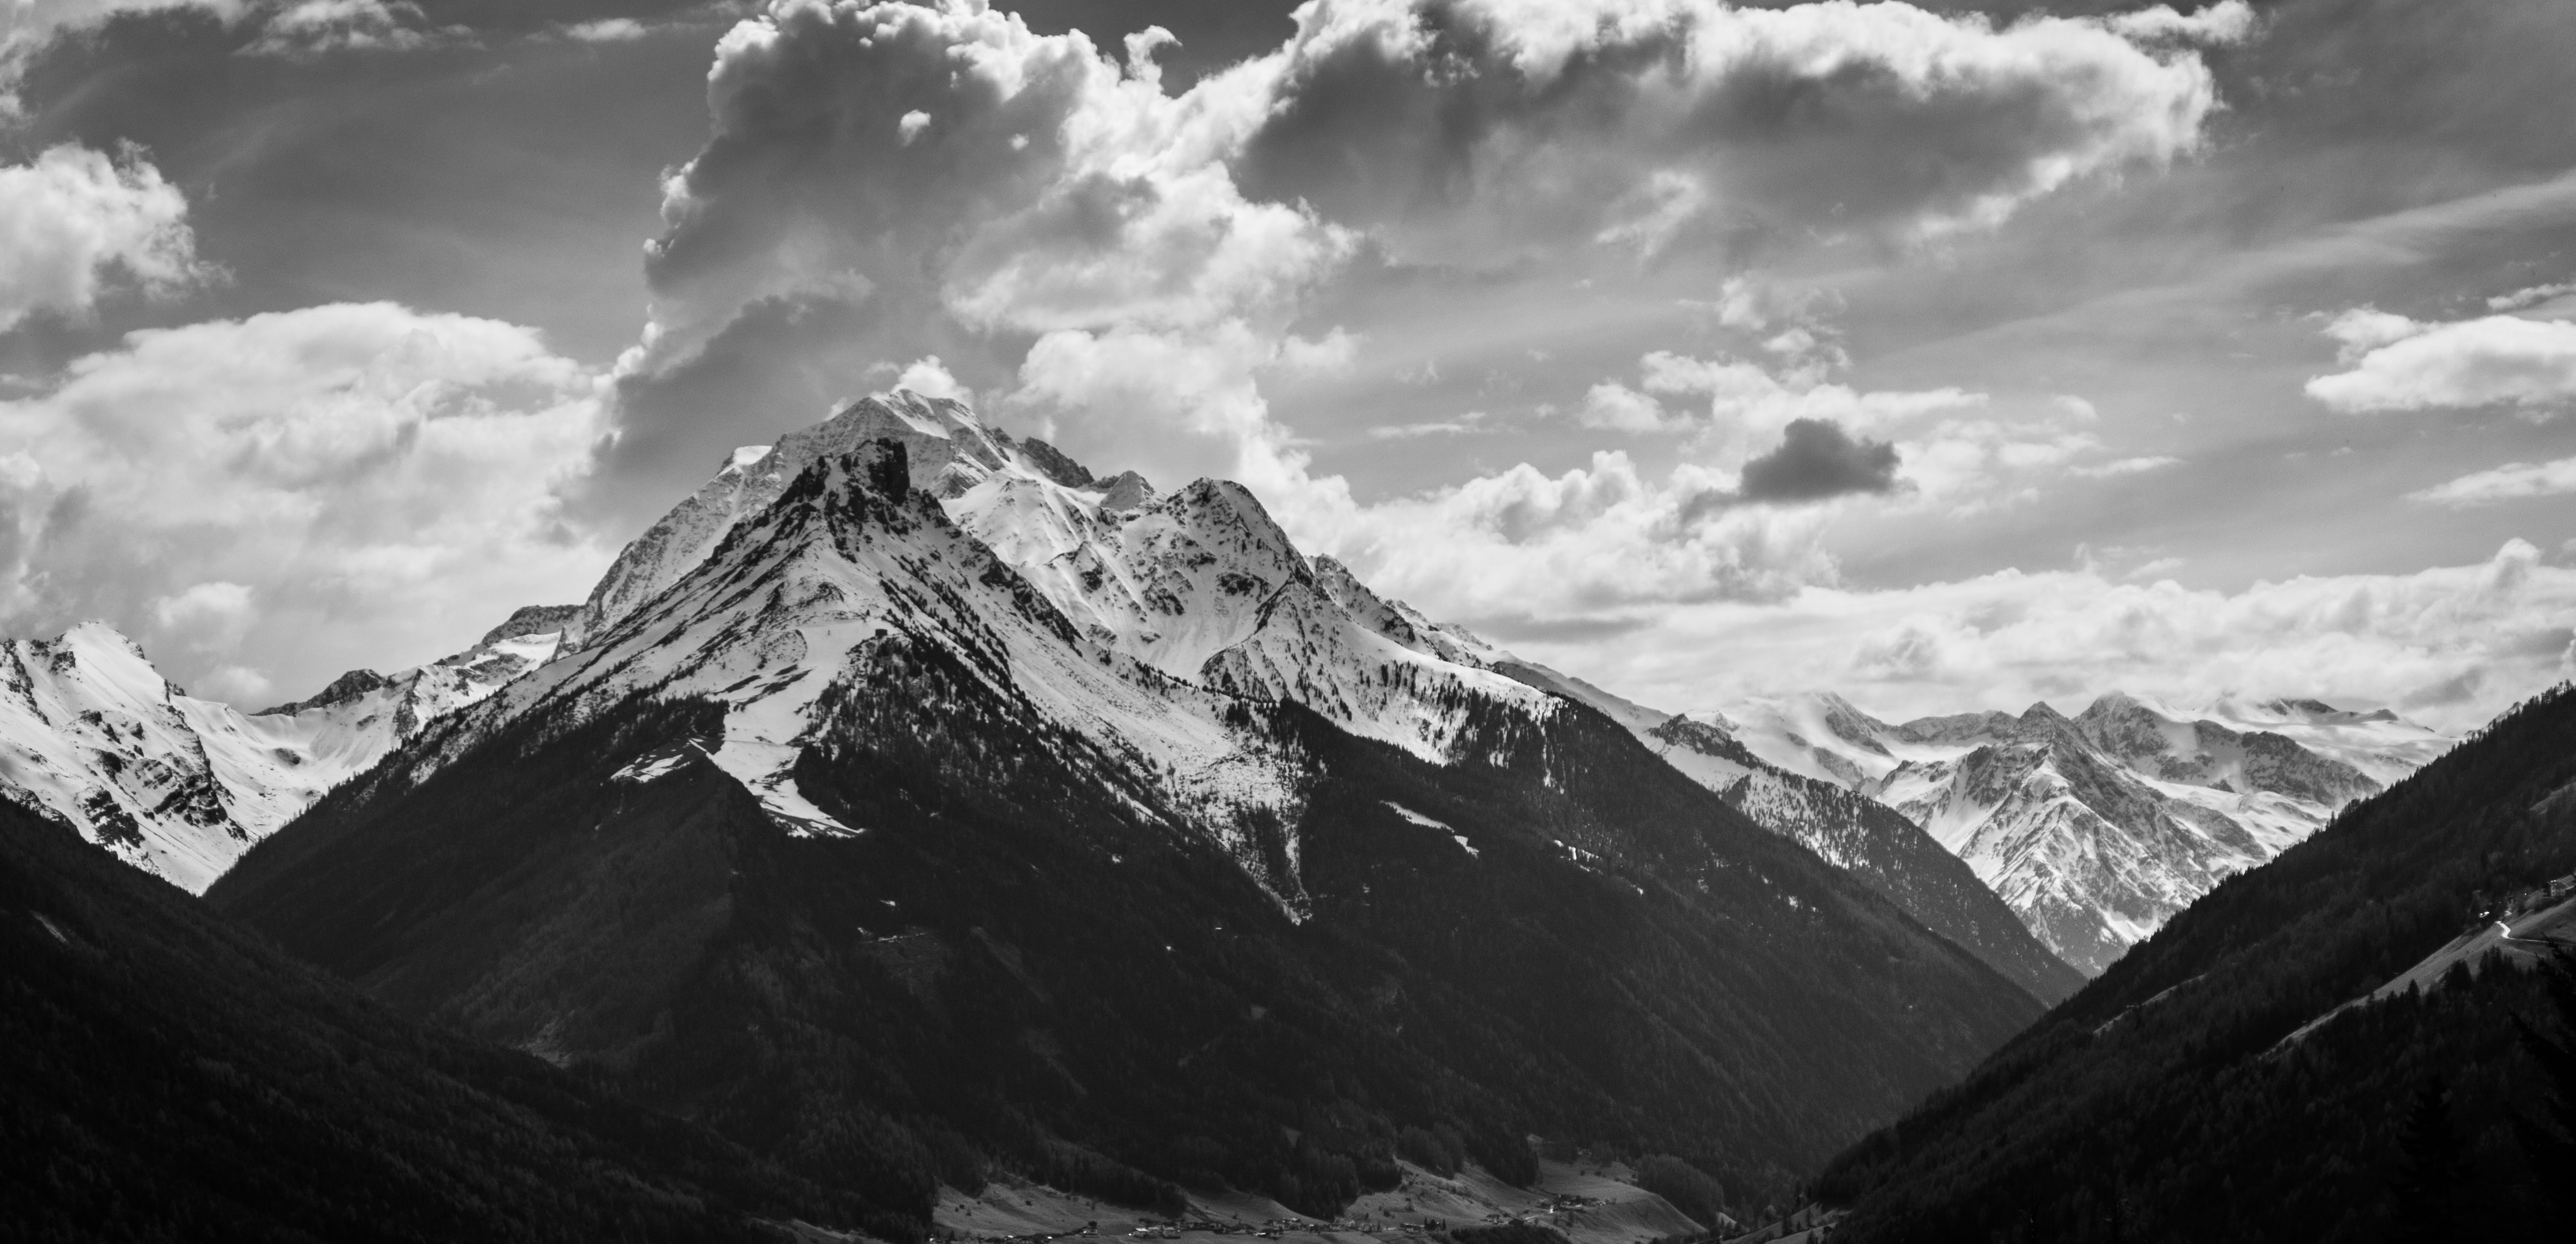 grayscale photo of mountain under clouds